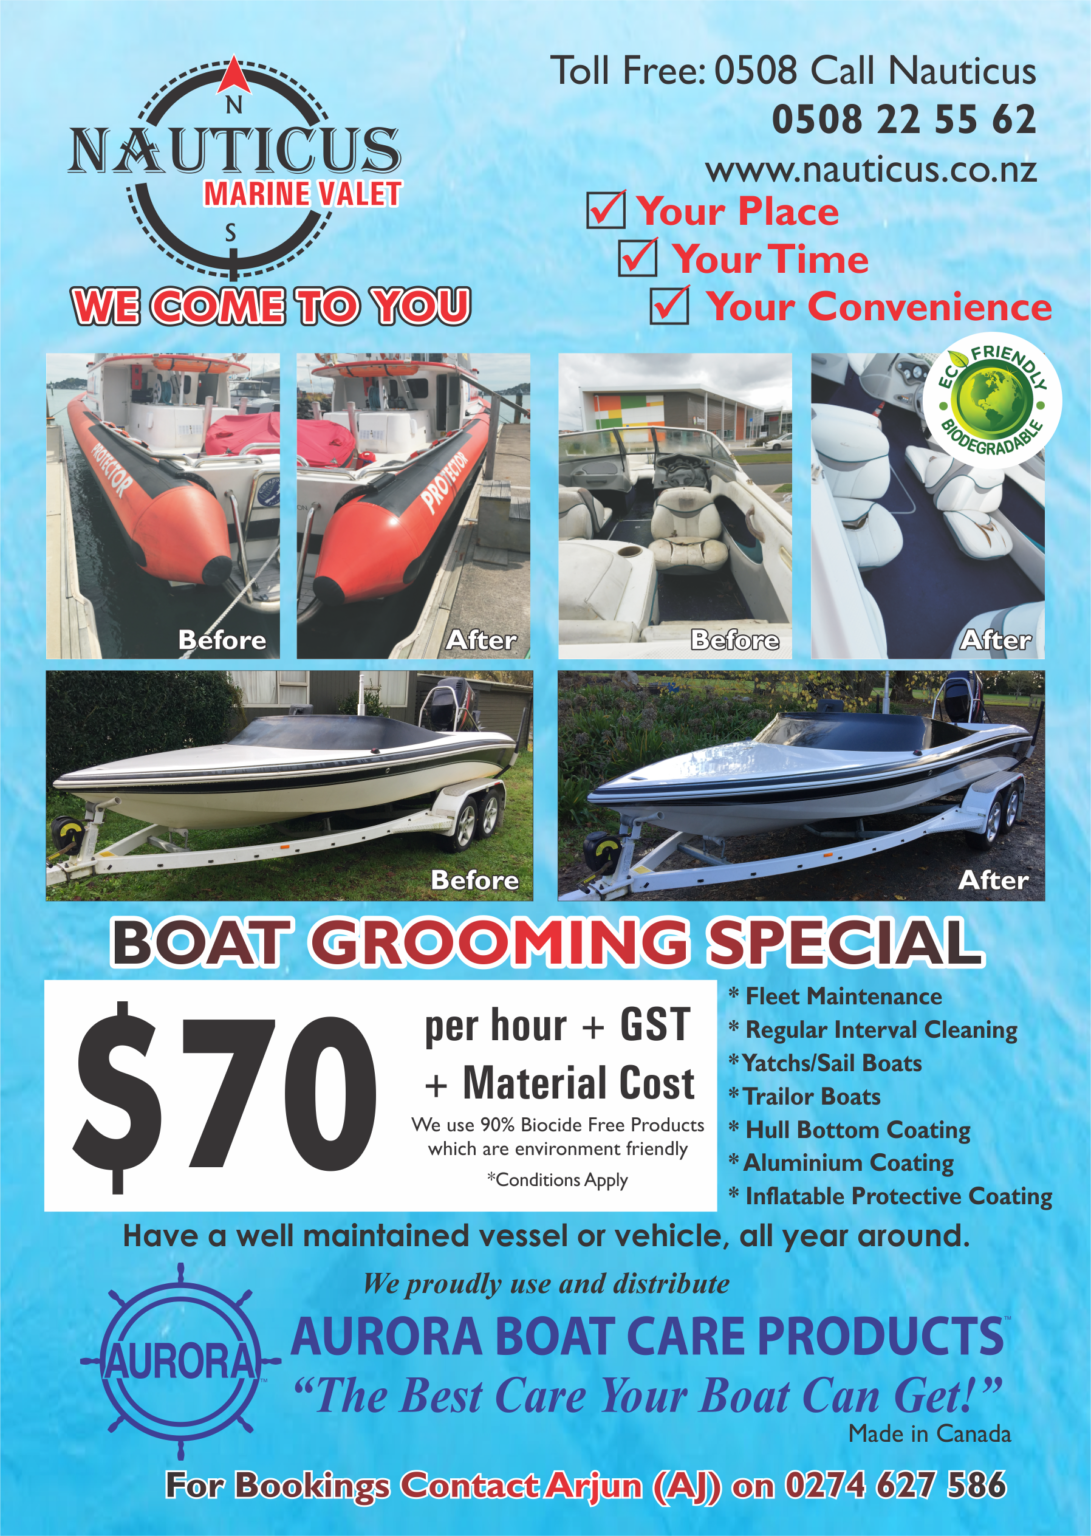 BOAT GROOMING SPECIAL